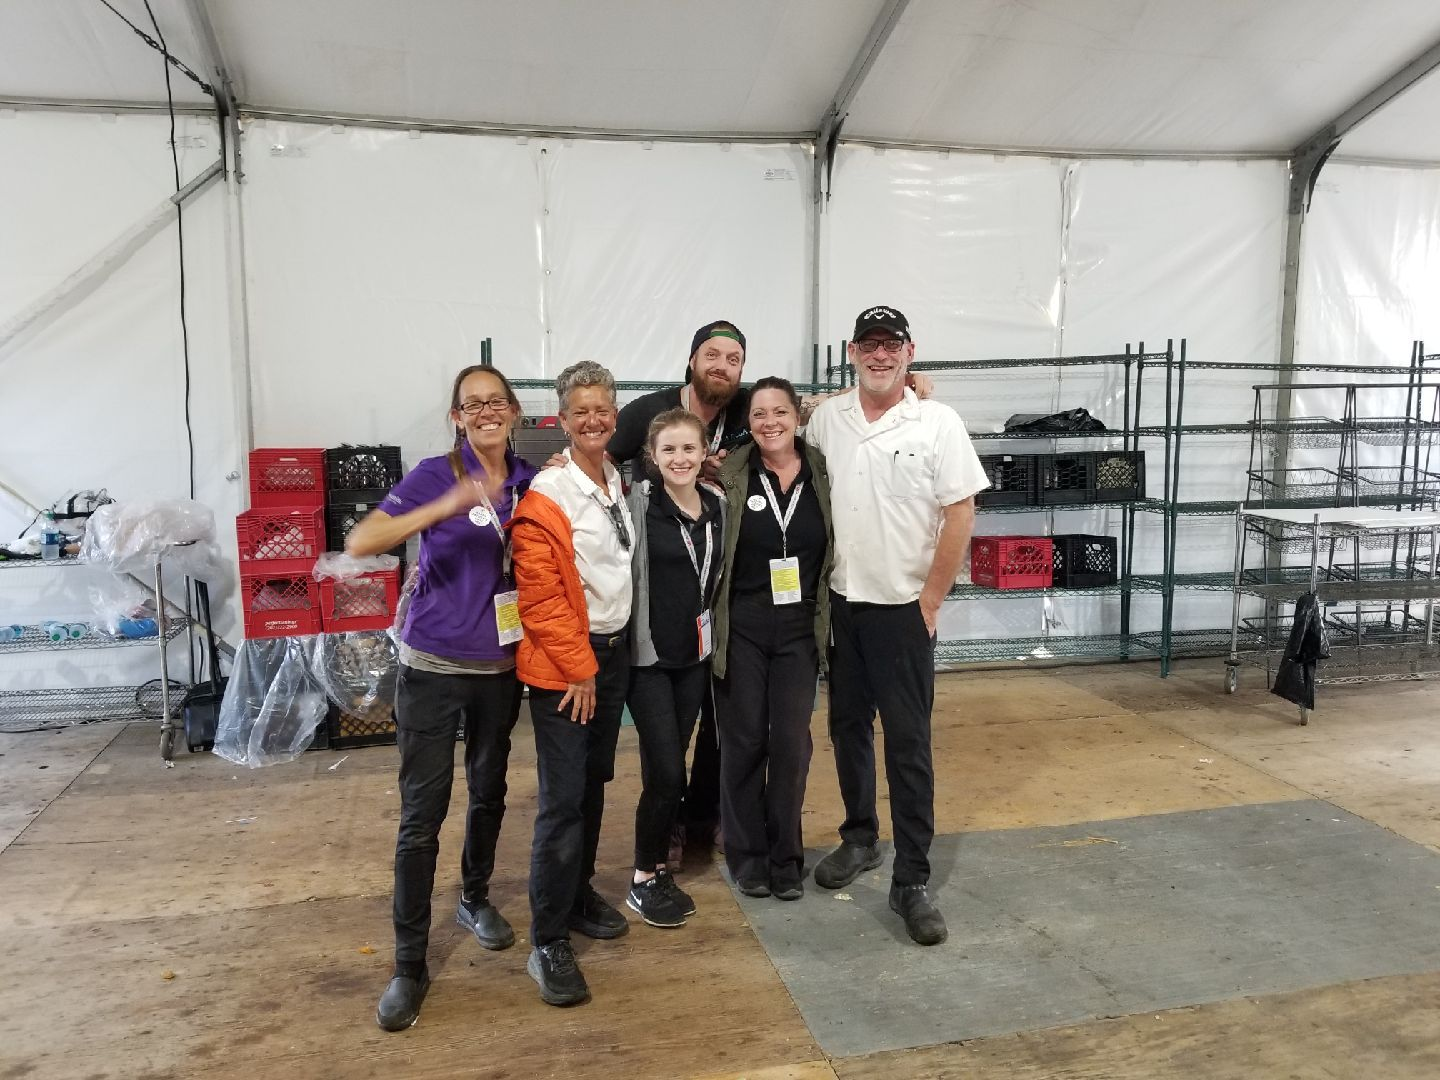 Gabriella Marino with other buffet crew members at the 2018 U.S. Open.